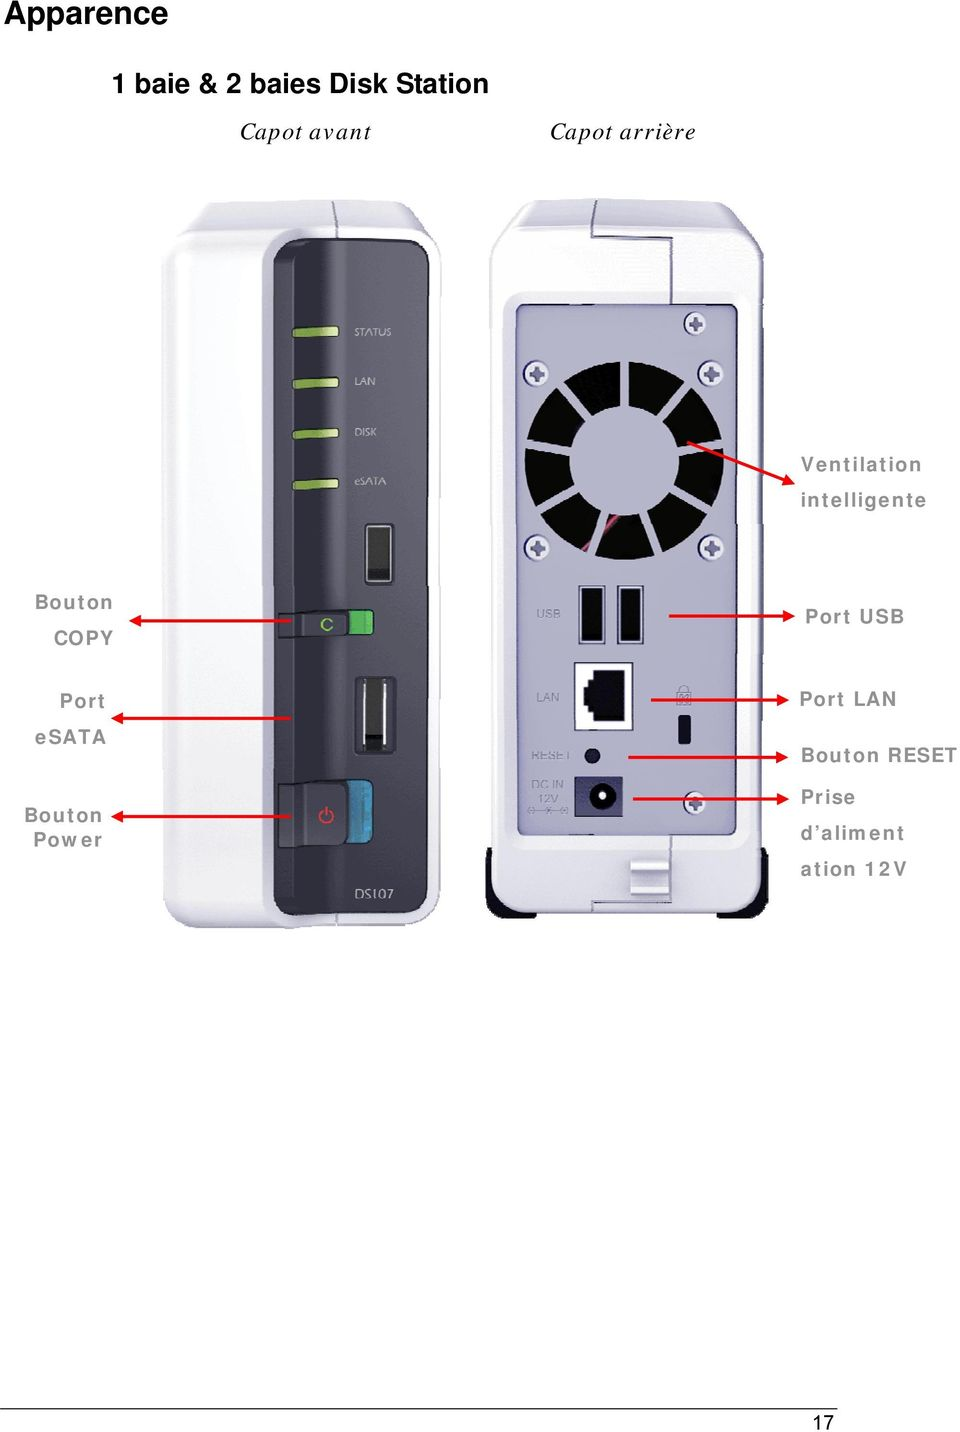 Bouton COPY Port USB Port esata Bouton Power